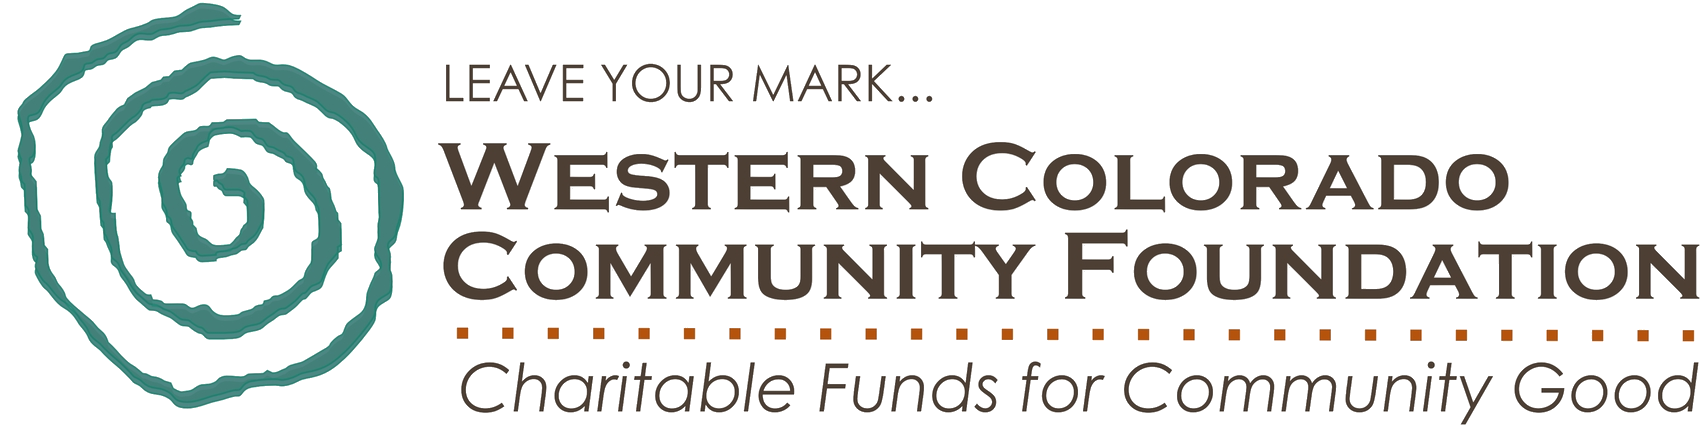 WCCF Logo - Transparent